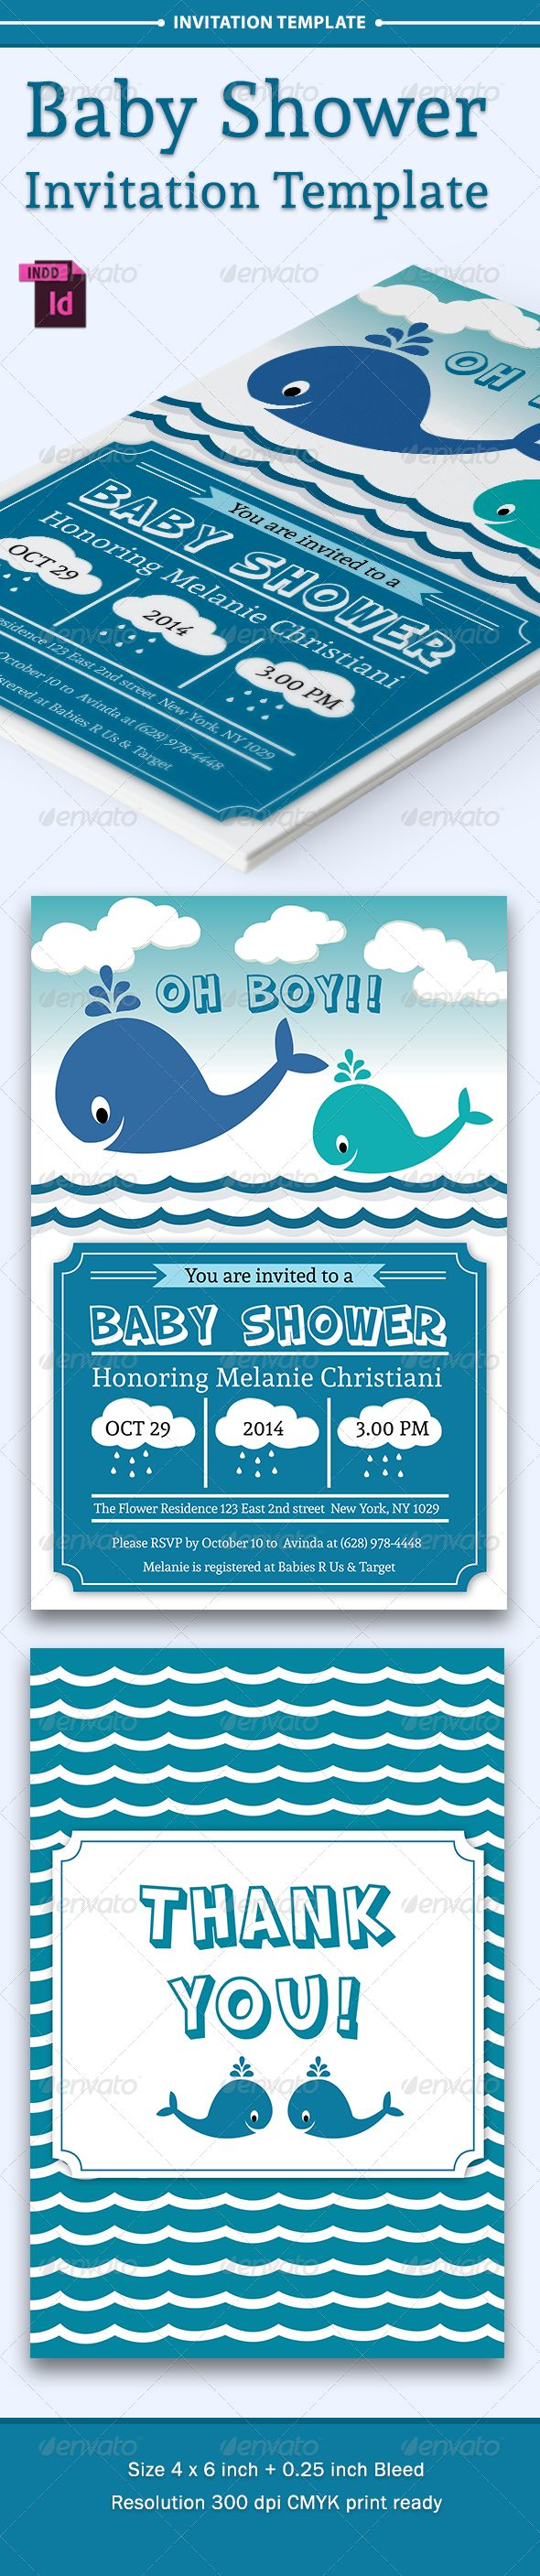 Baby Shower Template - Vol. 6 - Invitations Cards & Invites